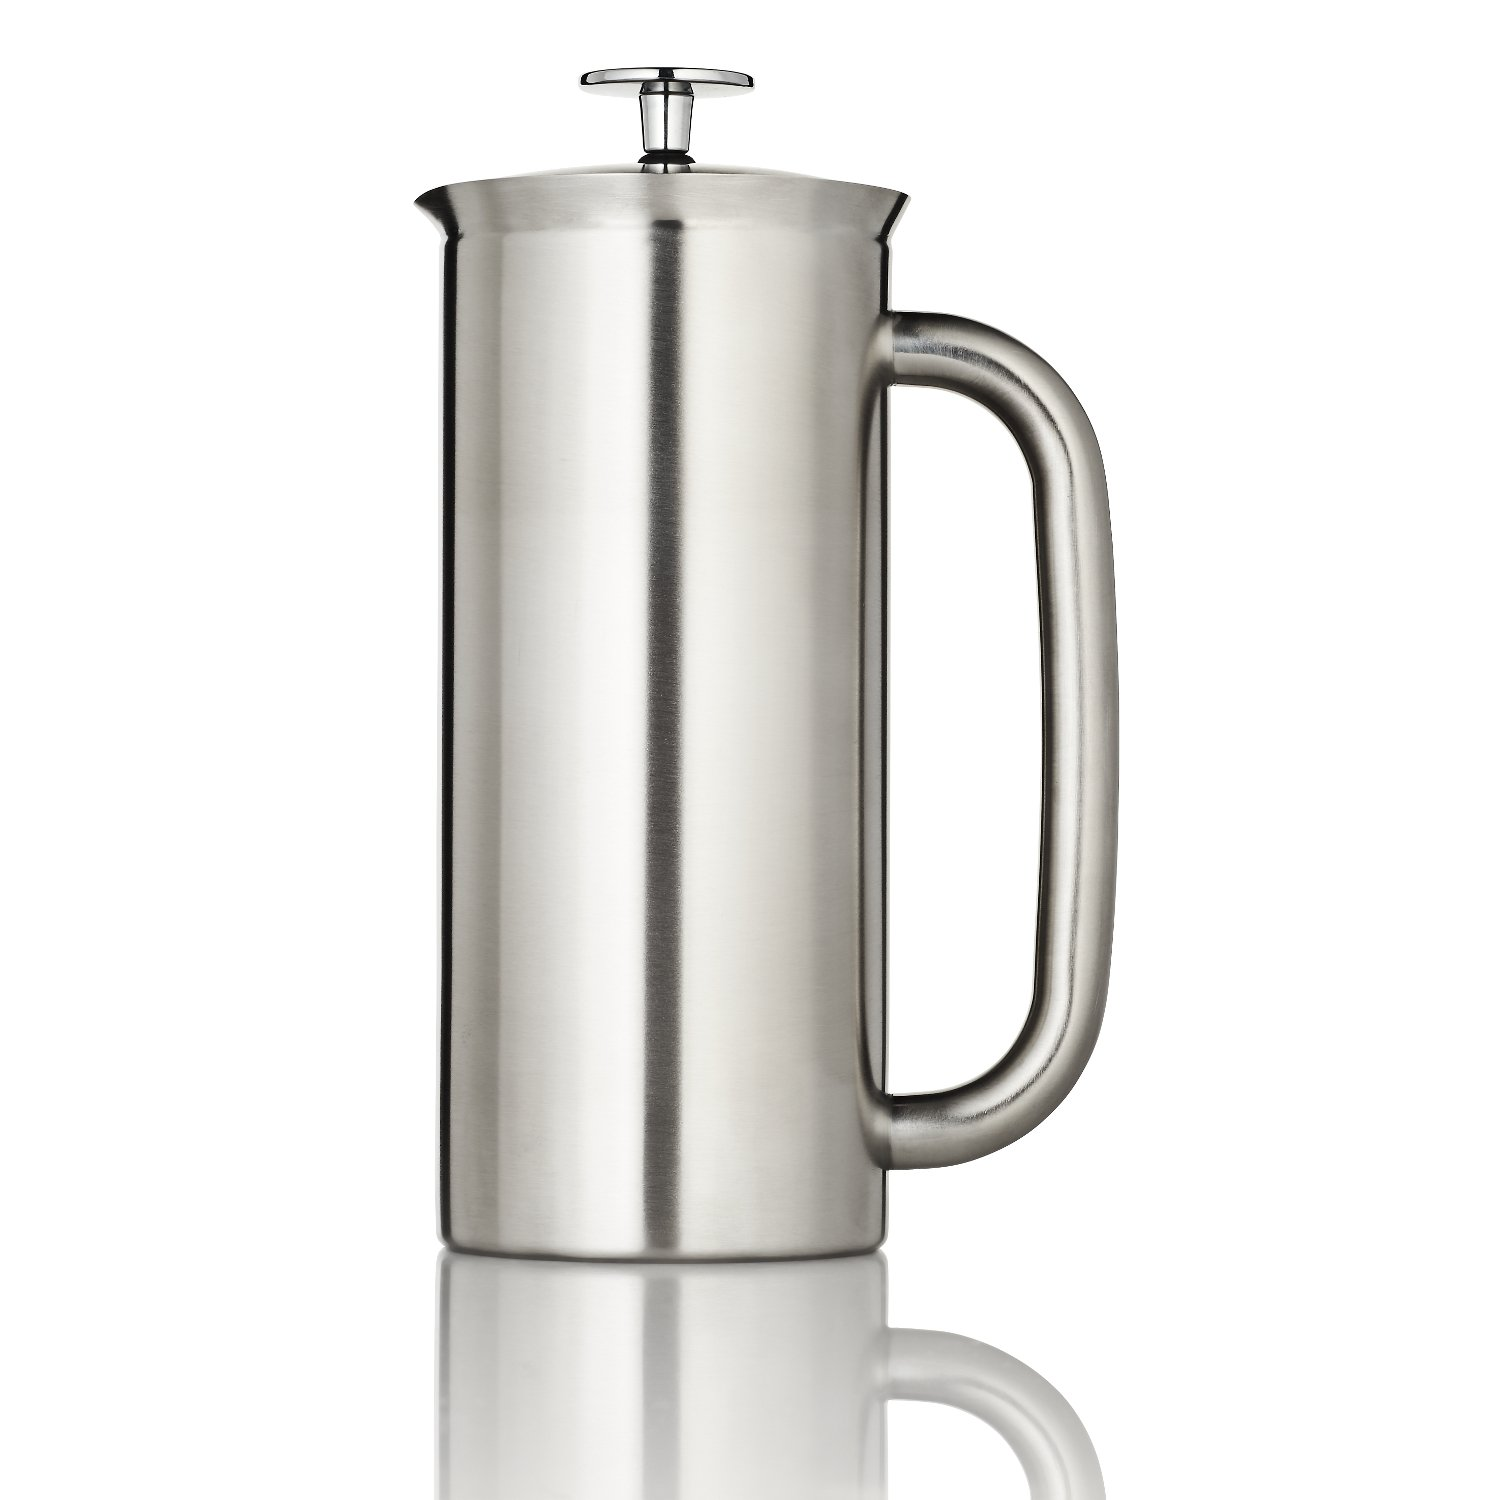 Espro 1132C2-FFP P7 Coffee French Press, 32 Ounce, Brushed Stainless Steel by Espro (Image #2)